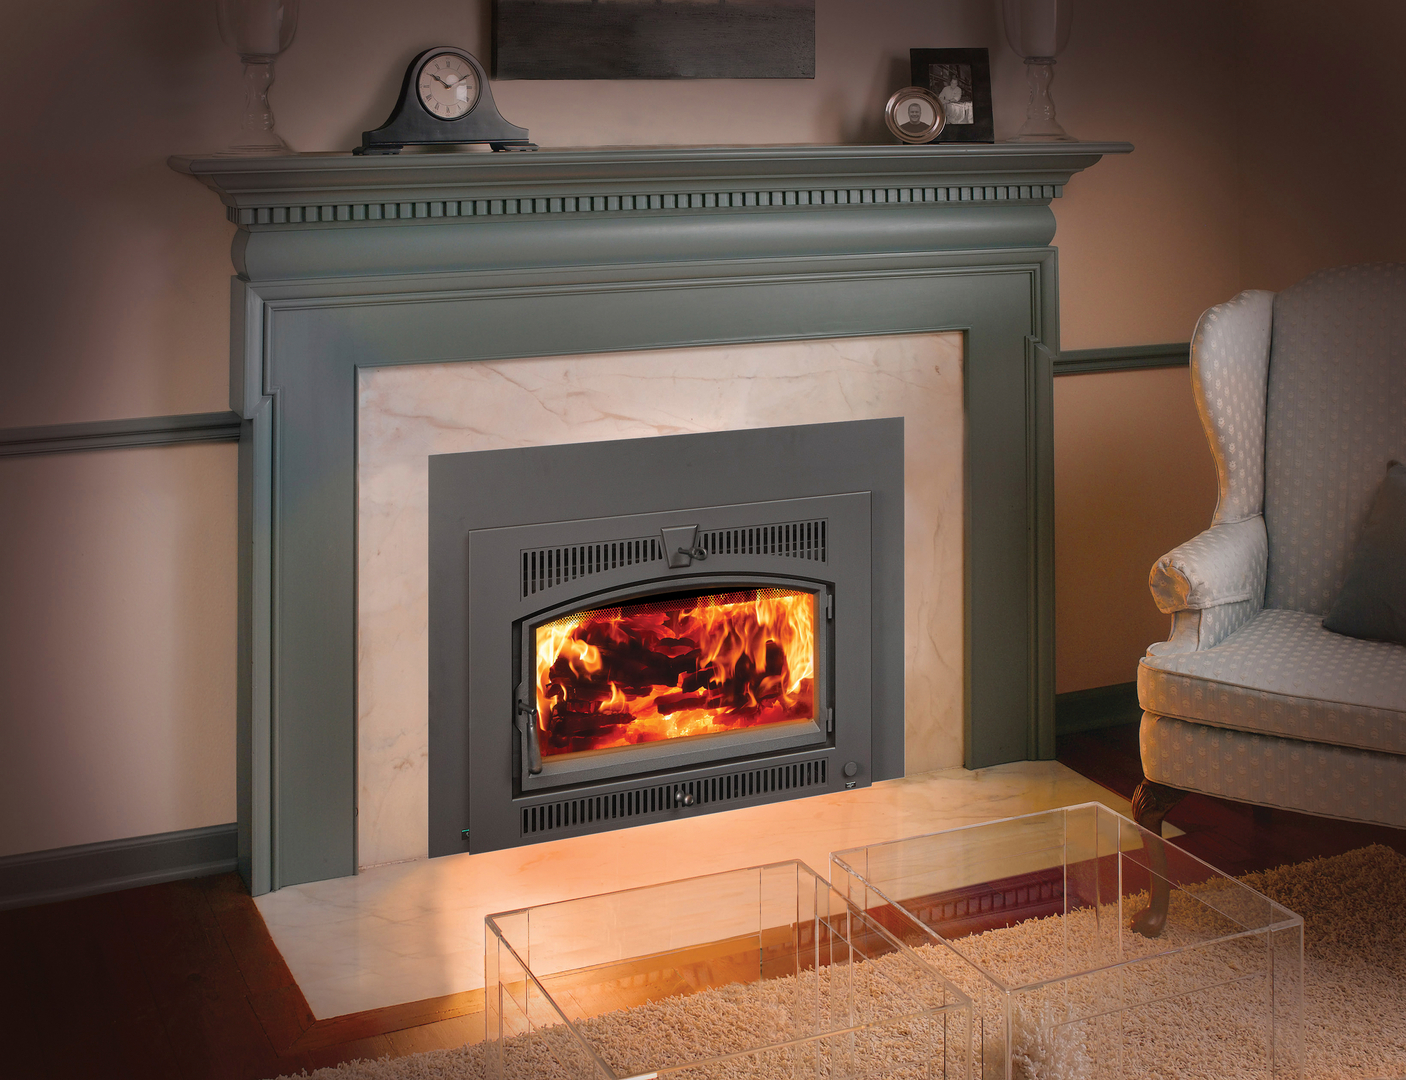 target buy place size fireplace sales at clearance fireplaces to of stands electric best full stand and enter